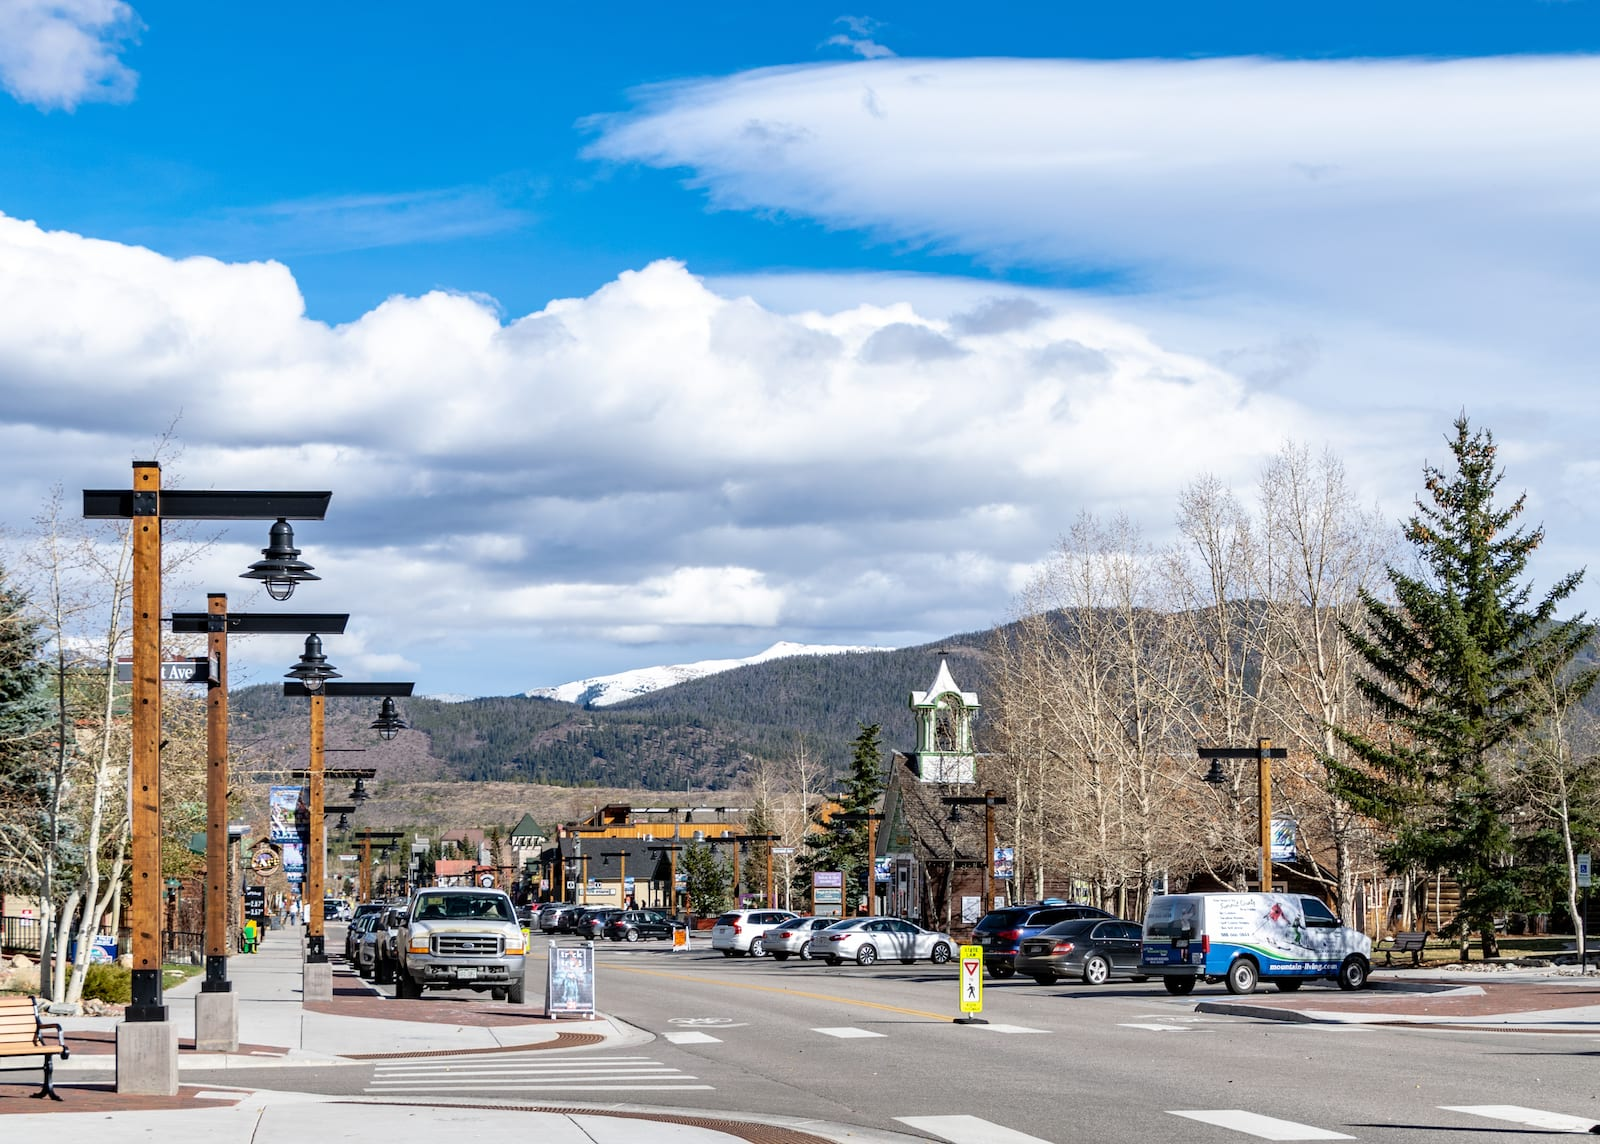 Downtown Frisco, Colorado